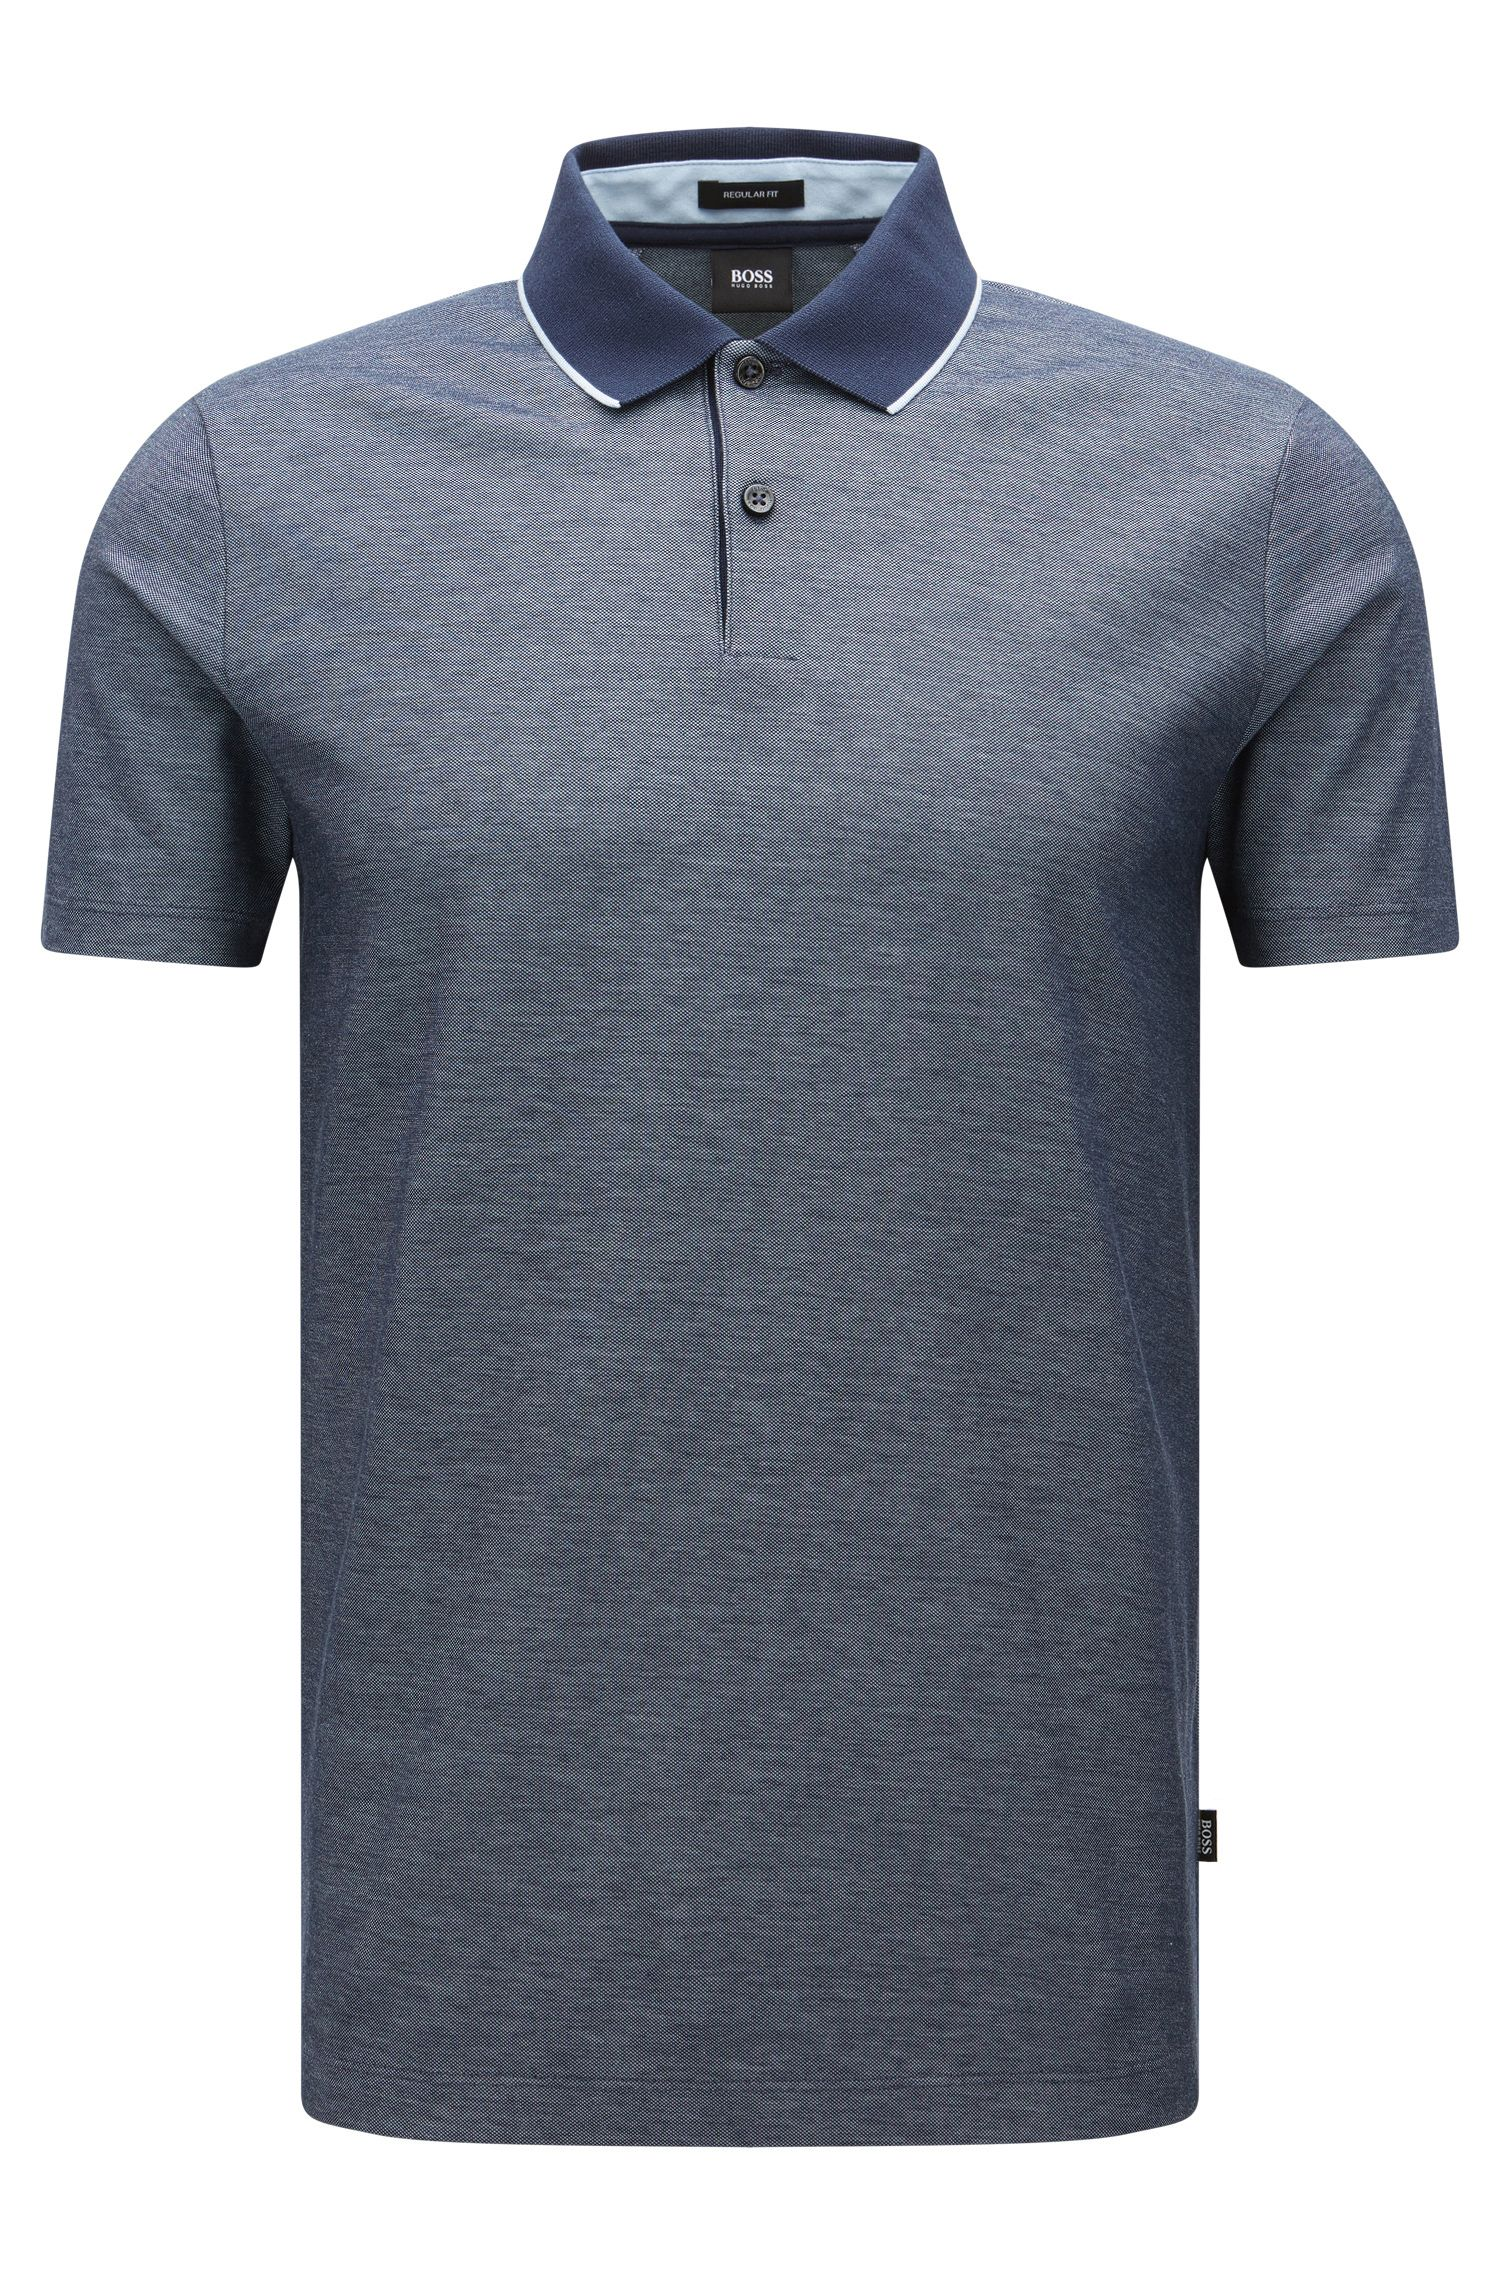 Regular-fit cotton polo shirt in two-tone fabric